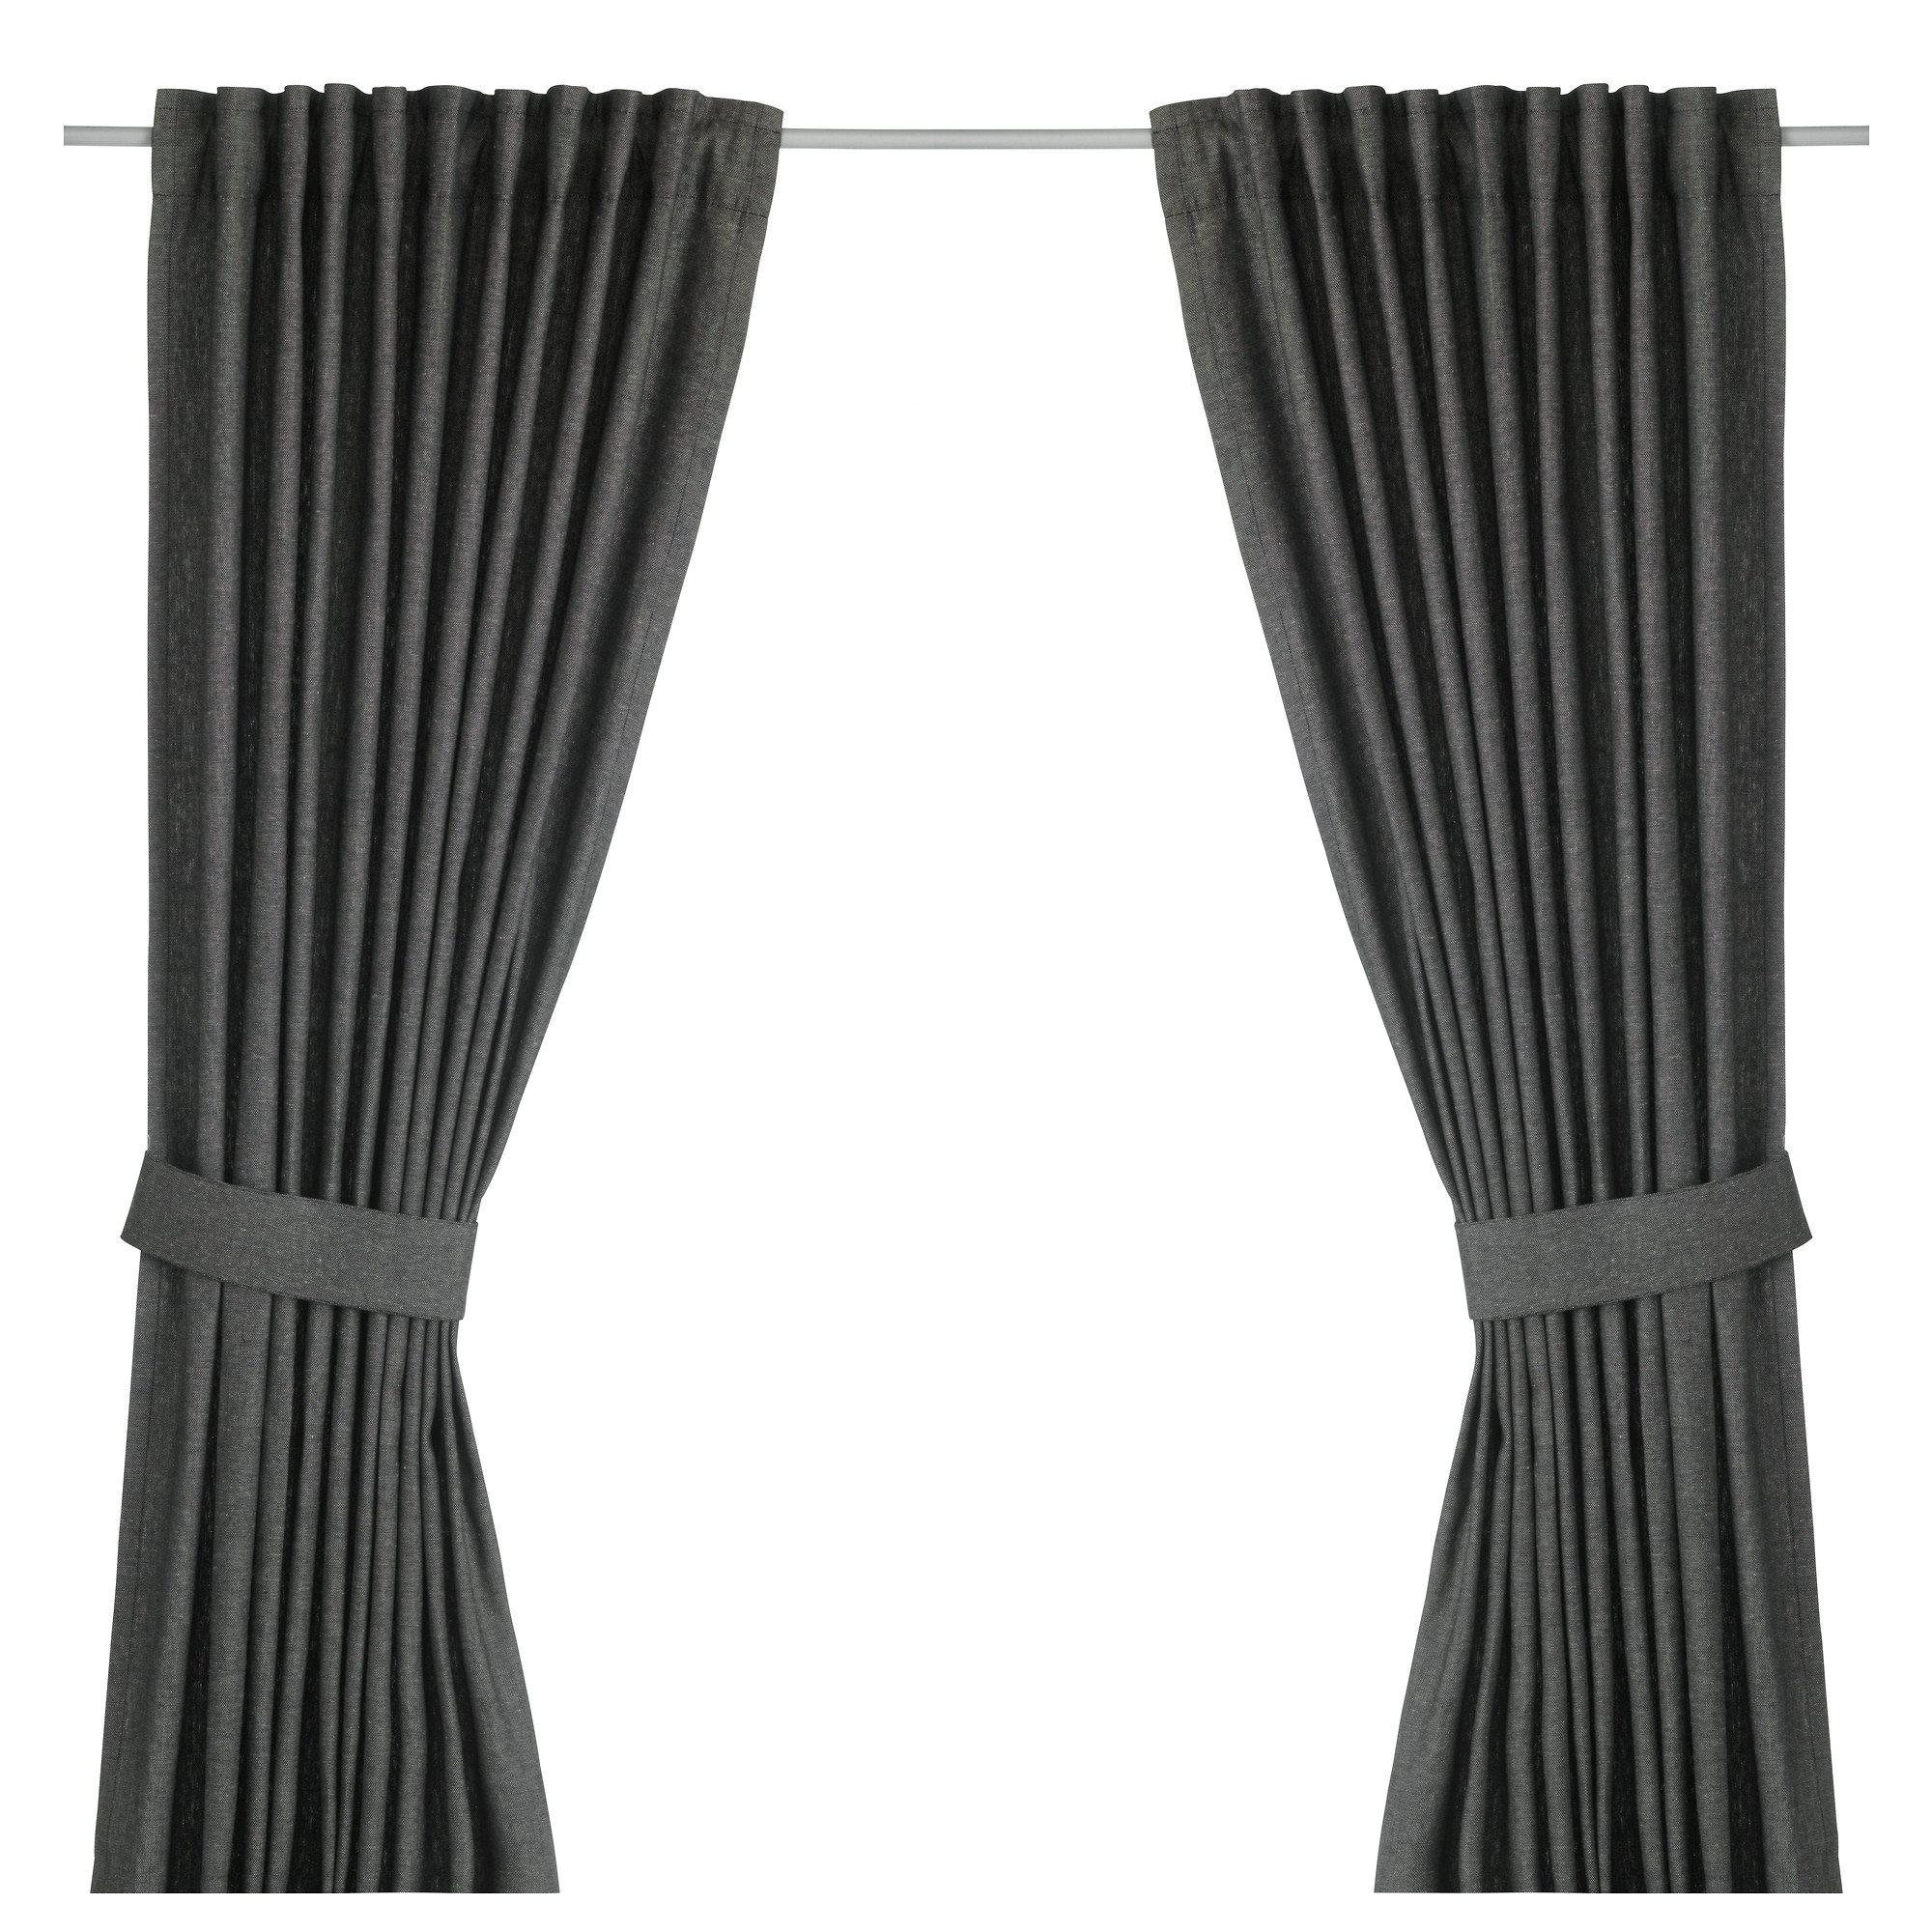 INGERT curtains with tie backs  1 pair  dark gray Length  98. Curtains   Living Room   Bedroom Curtains   IKEA